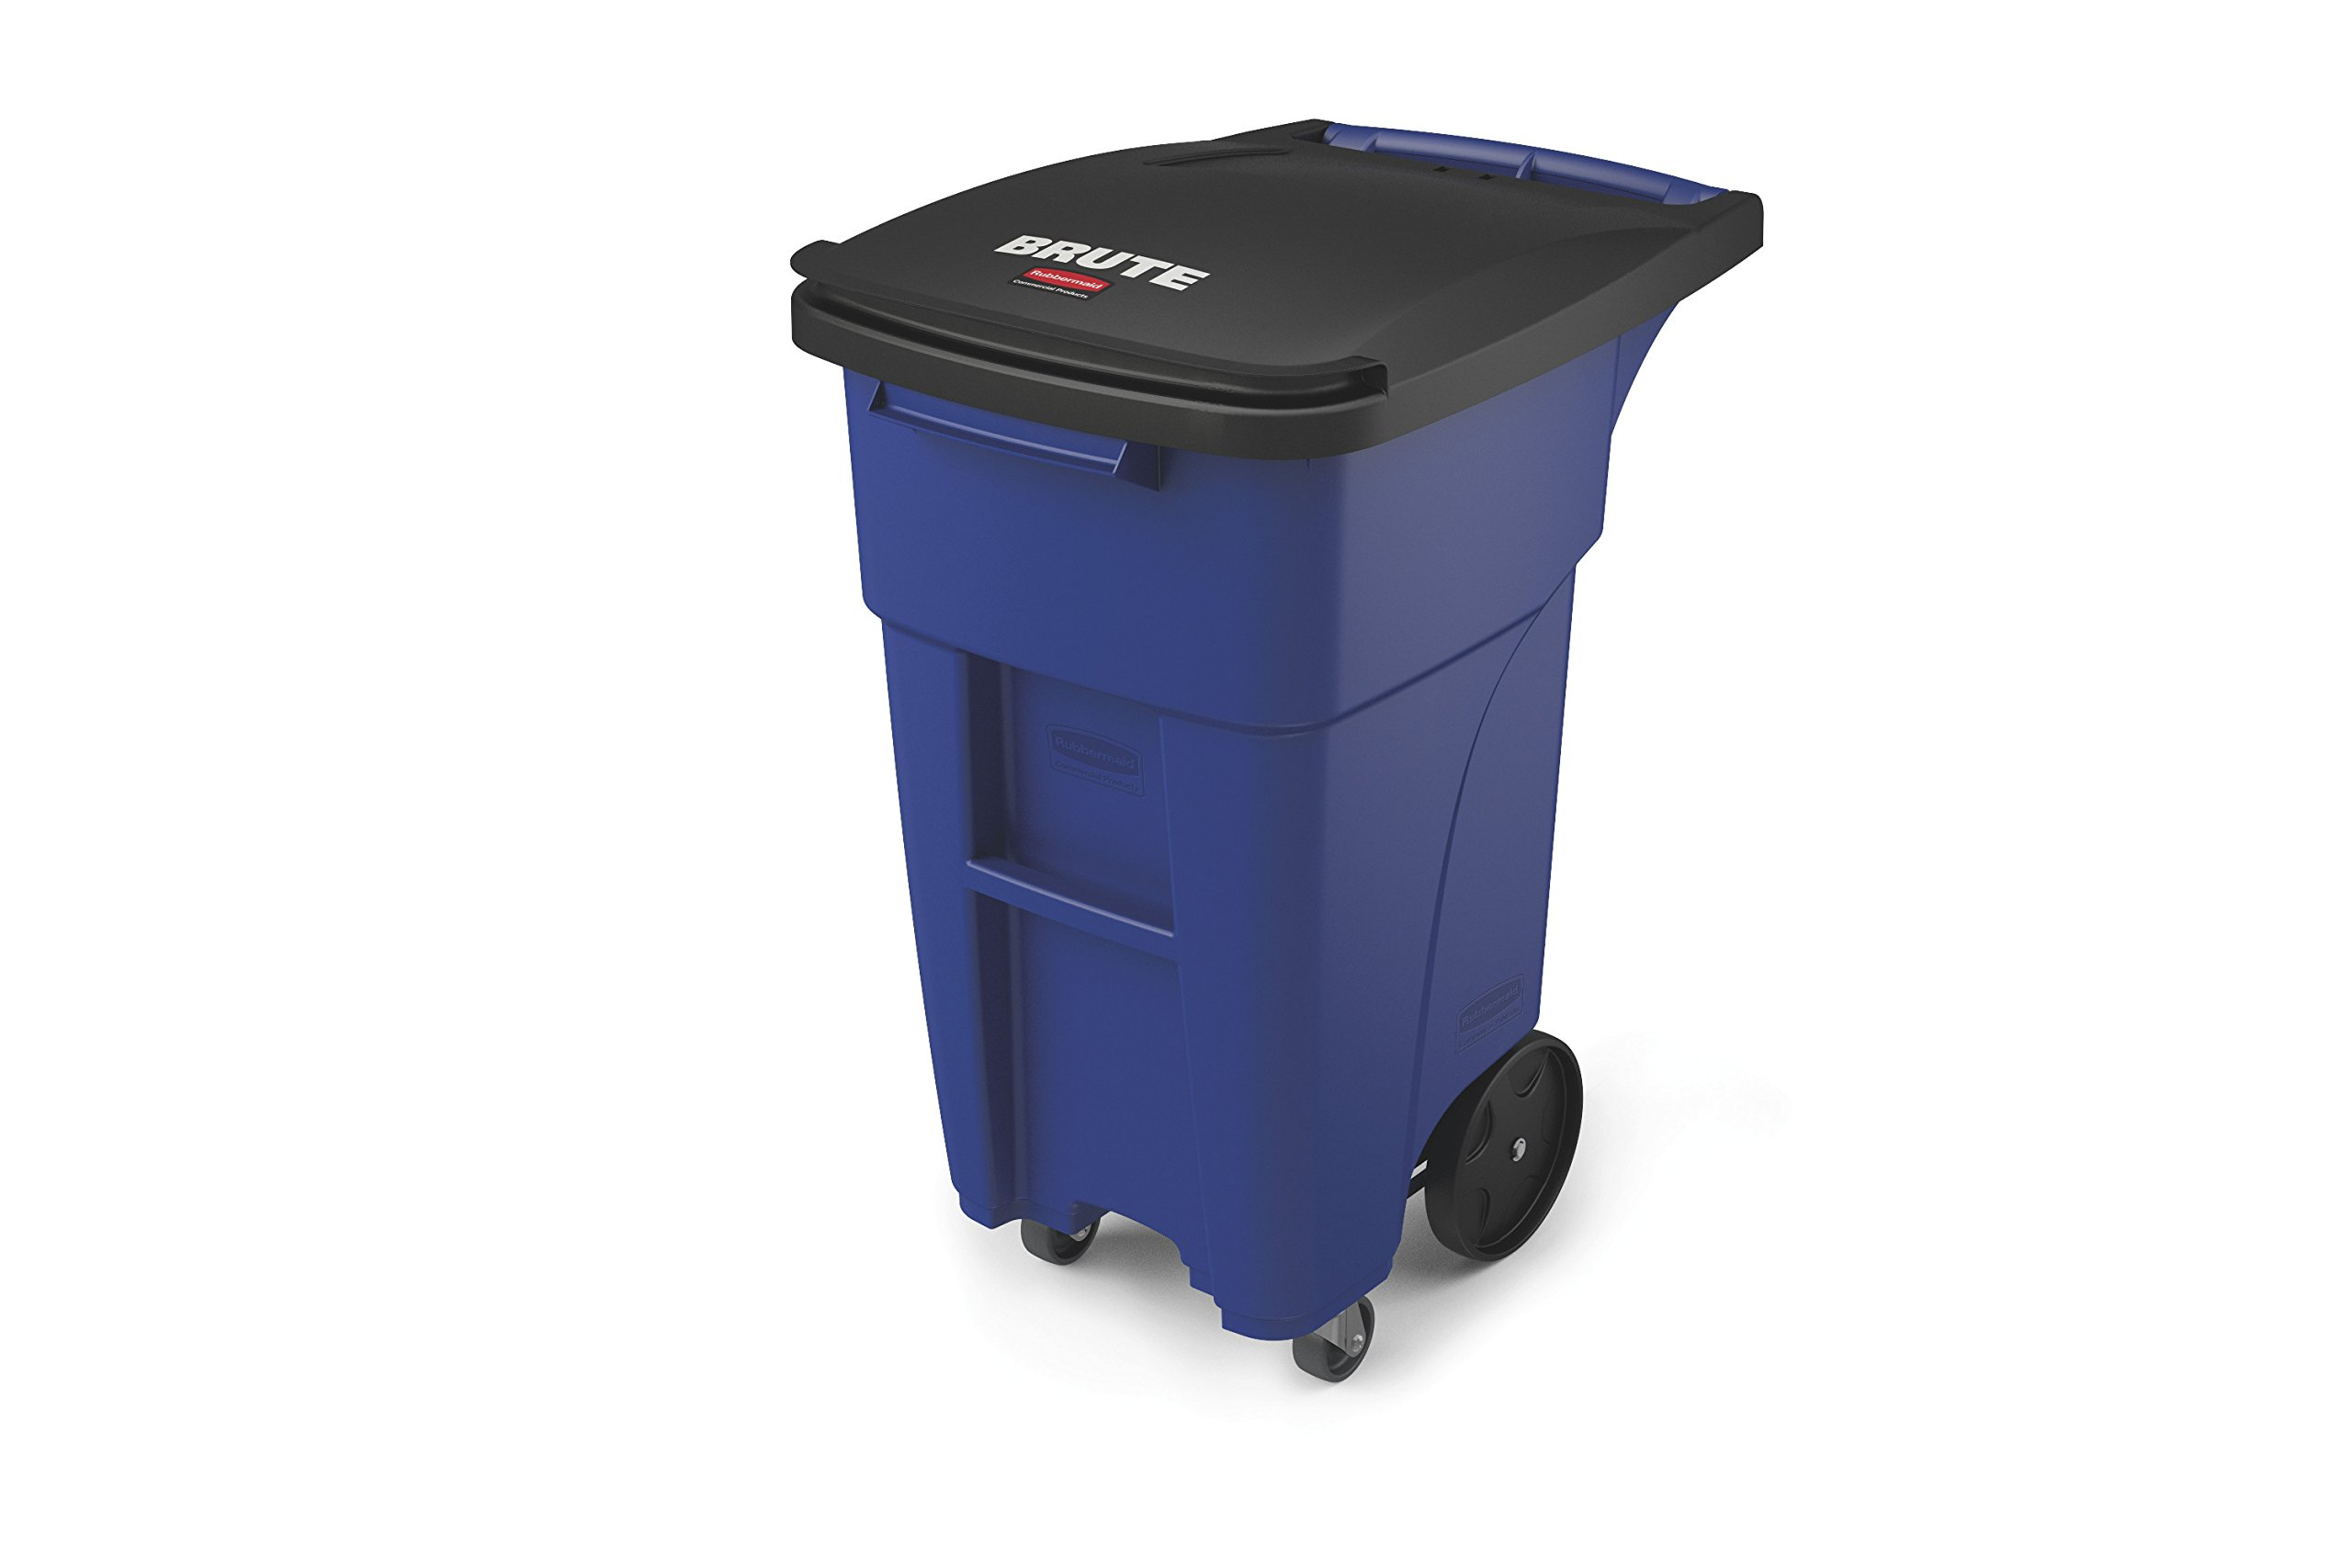 Rubbermaid Commercial 1971949 Brute Rollout Trash Can with Casters, 32 gal/120 L, 37.160'' Height, 20.620'' Width, Blue